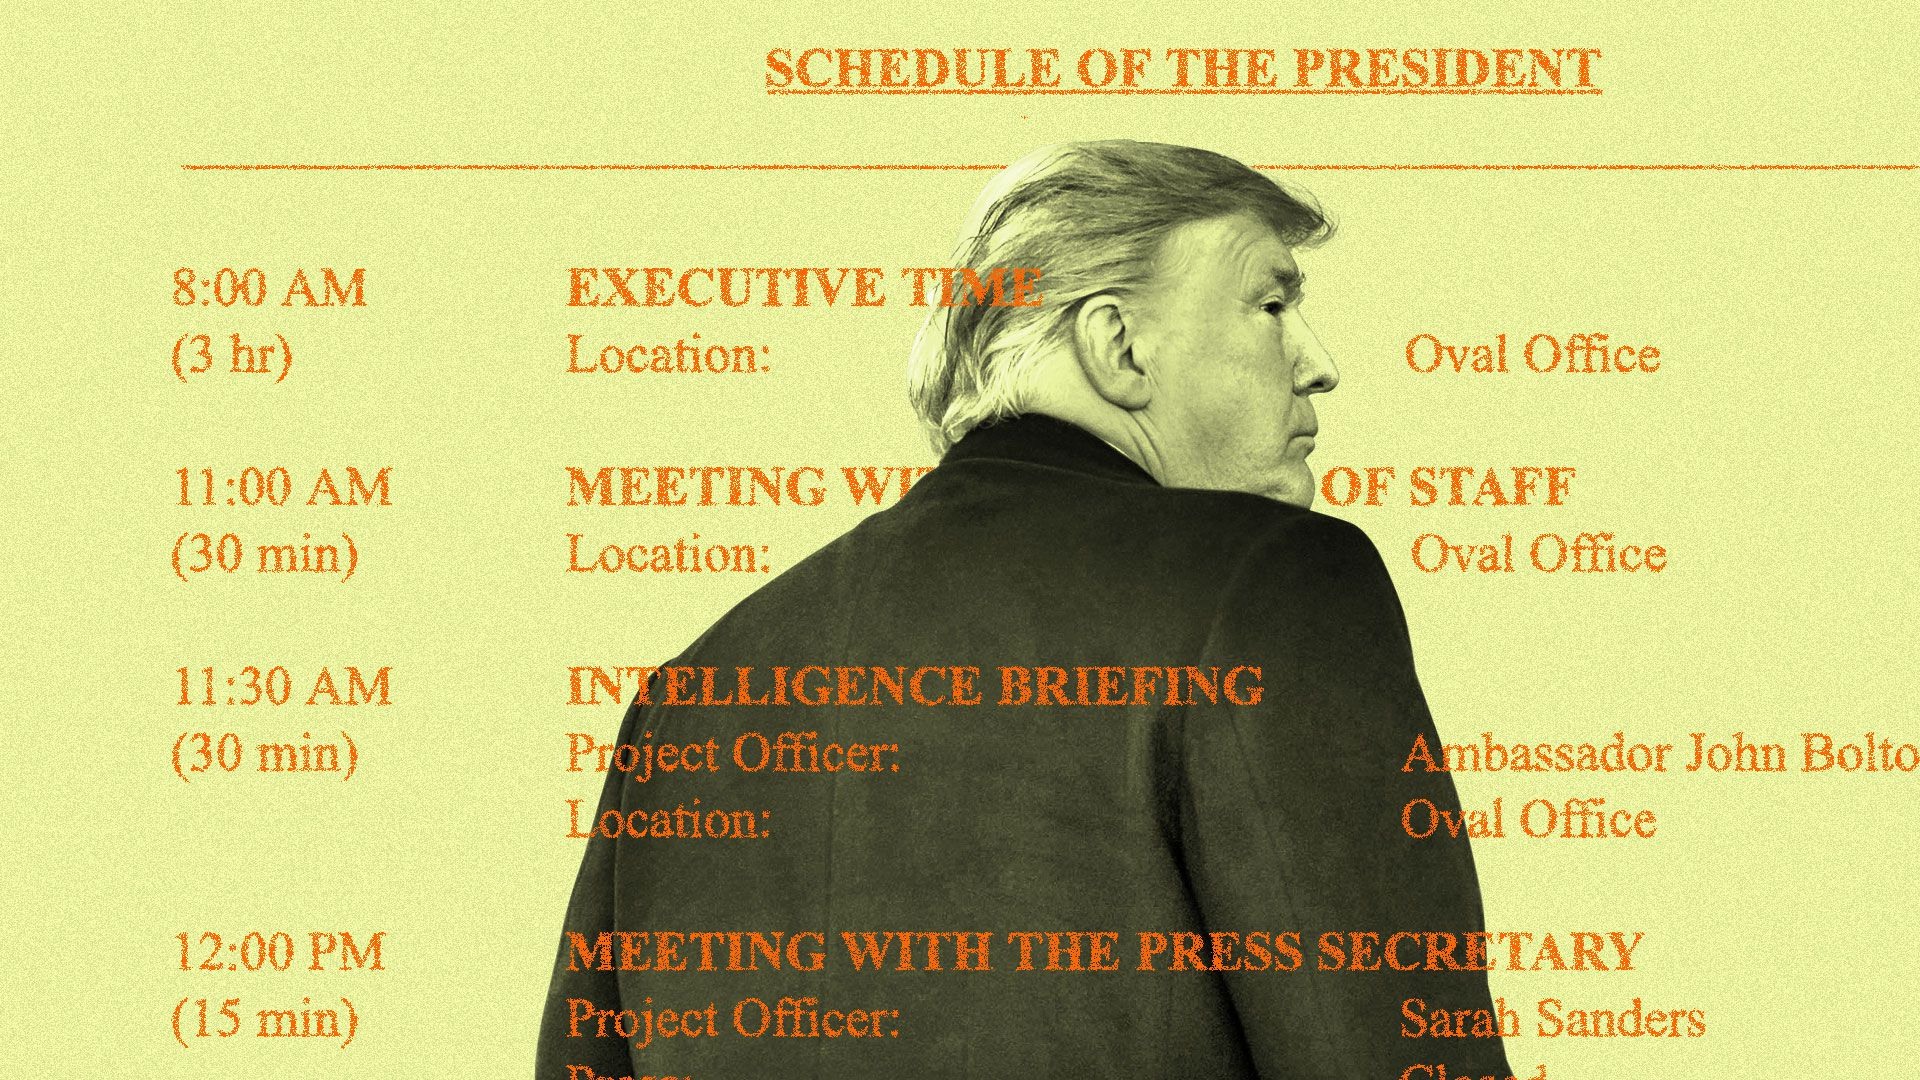 Donald Trump surrounded by deconstructed segments of his schedule